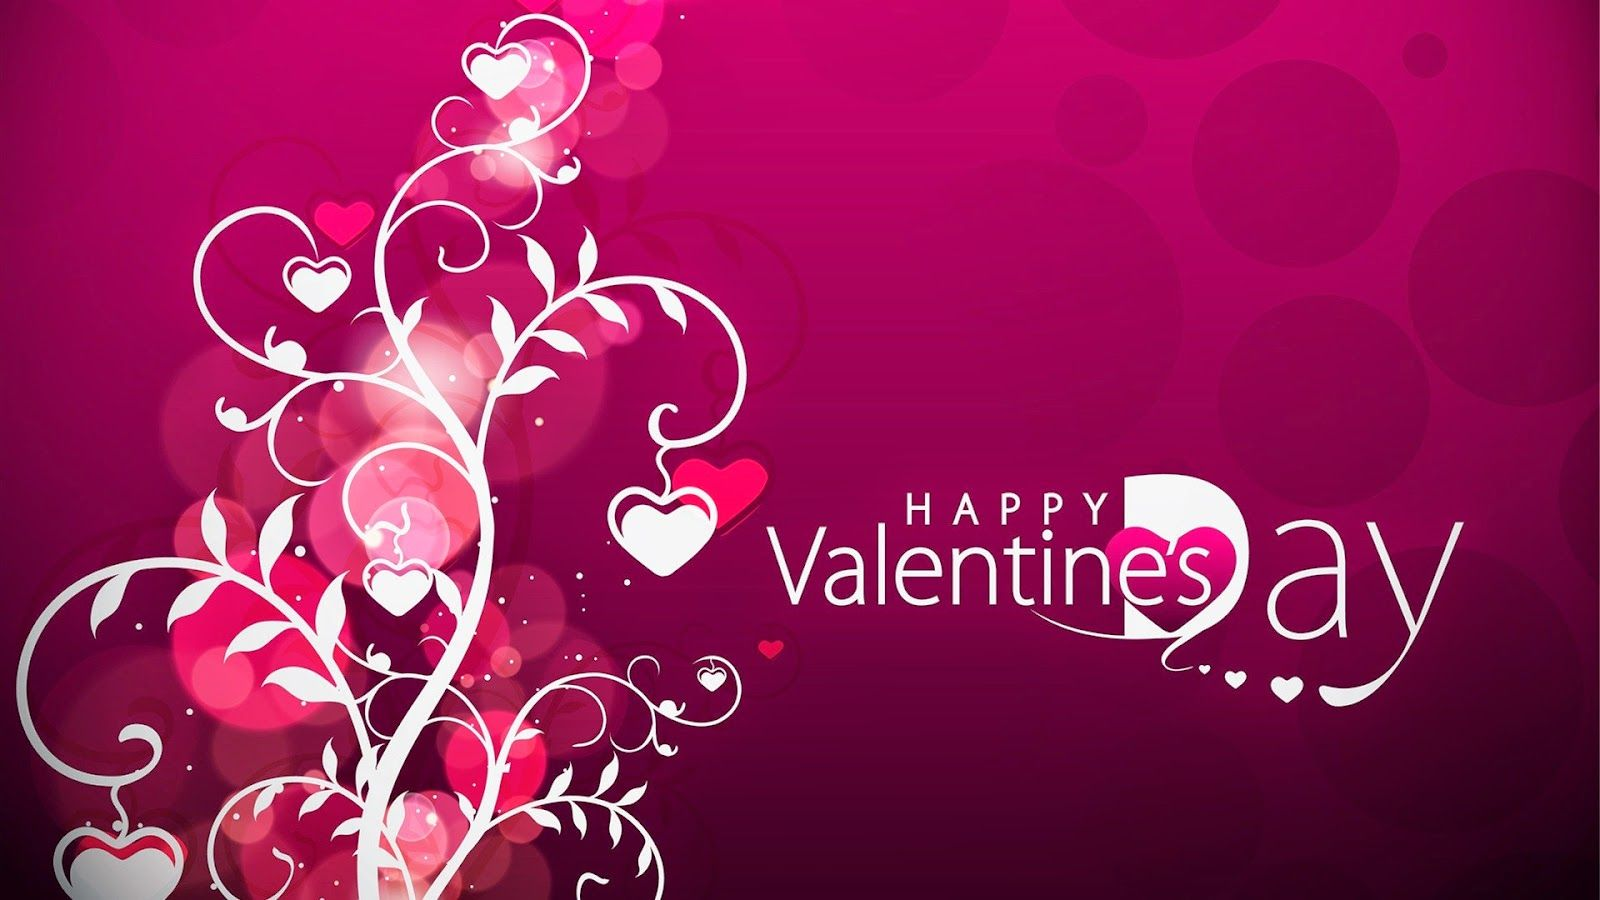 15 new valentine's day desktop wallpapers for 2015 | ♥hearts